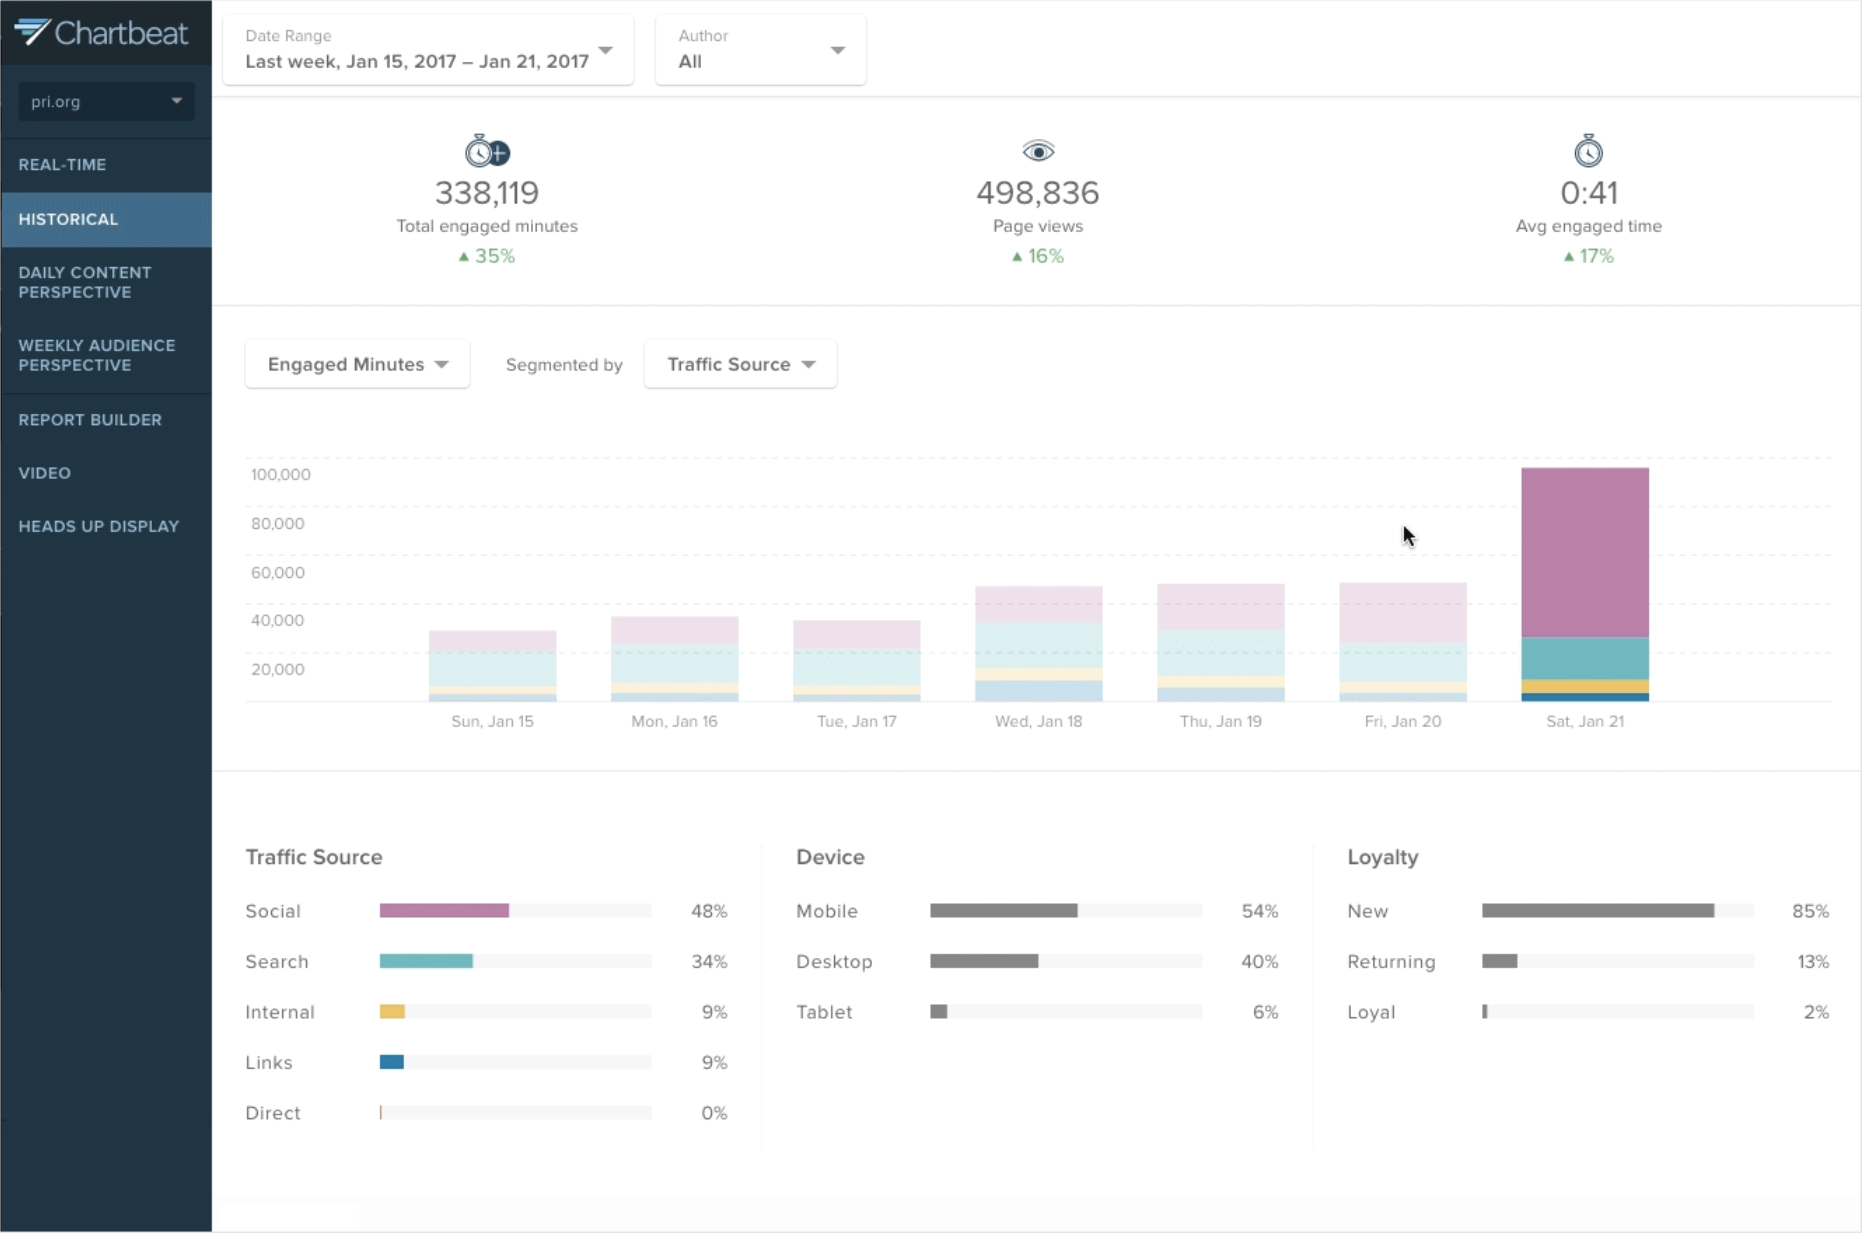 Tracks historical data so teams can analyze traffic source, device, and user loyalty over time